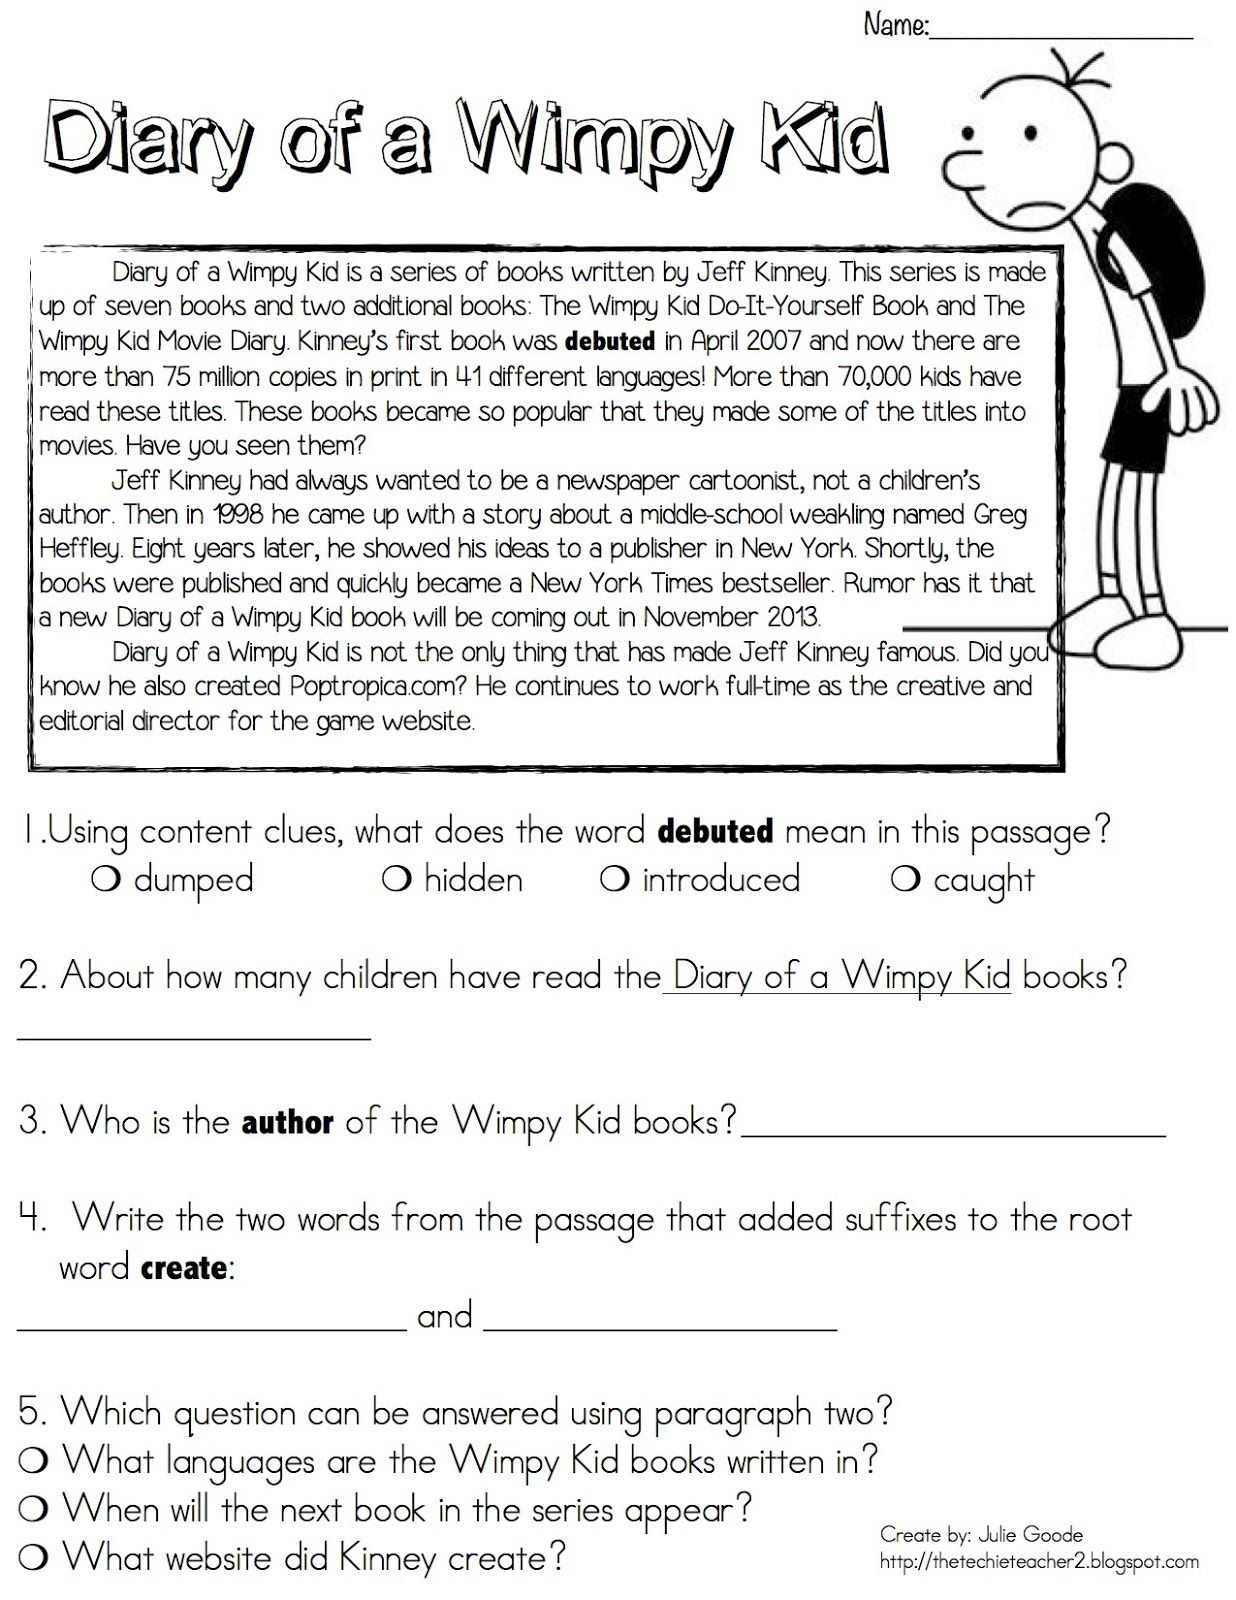 Diary of a Wimpy Kid Reading Passage FREEBIE